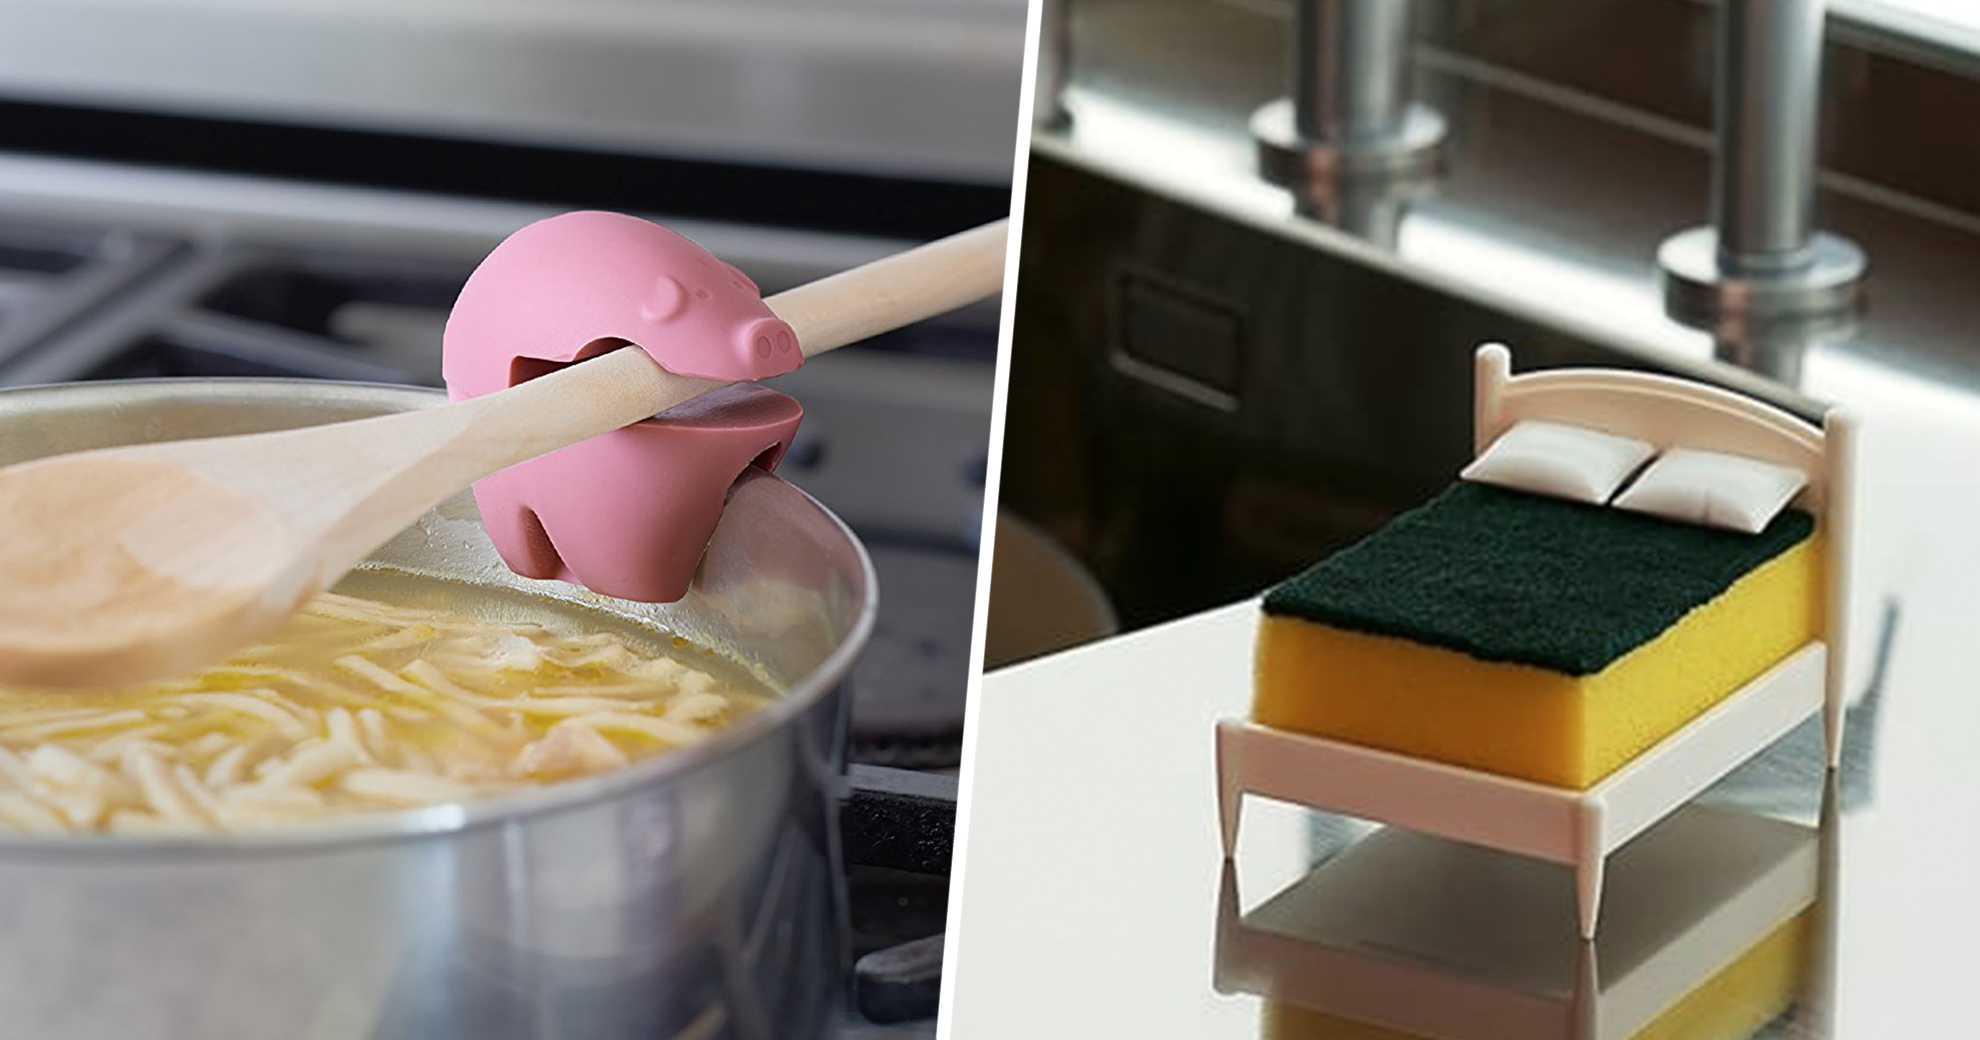 23 Kitchen Products That Actually Might Make You Want To Cook